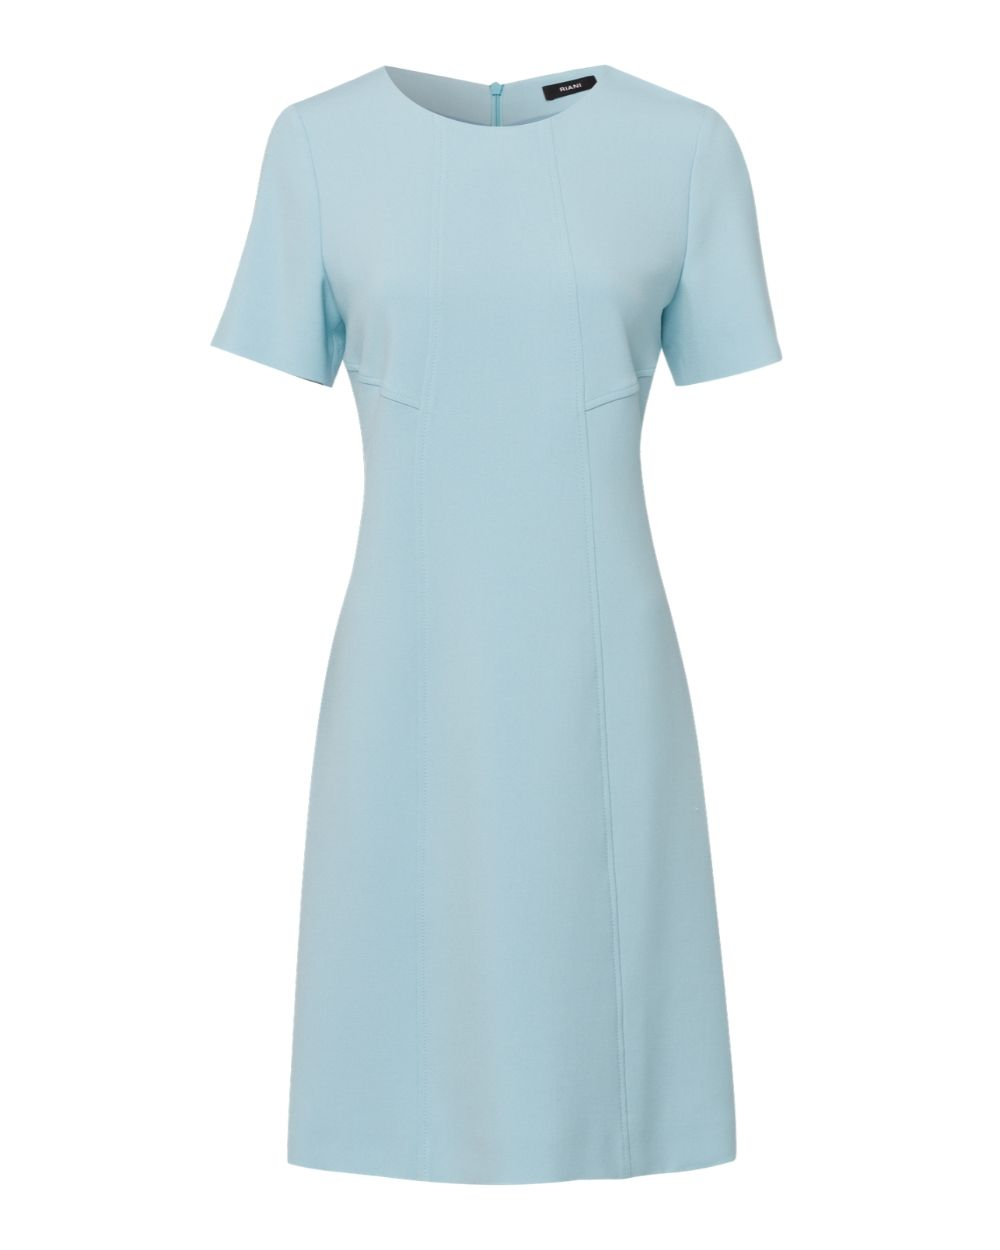 Riani Aqua Dress - Snooty Frox